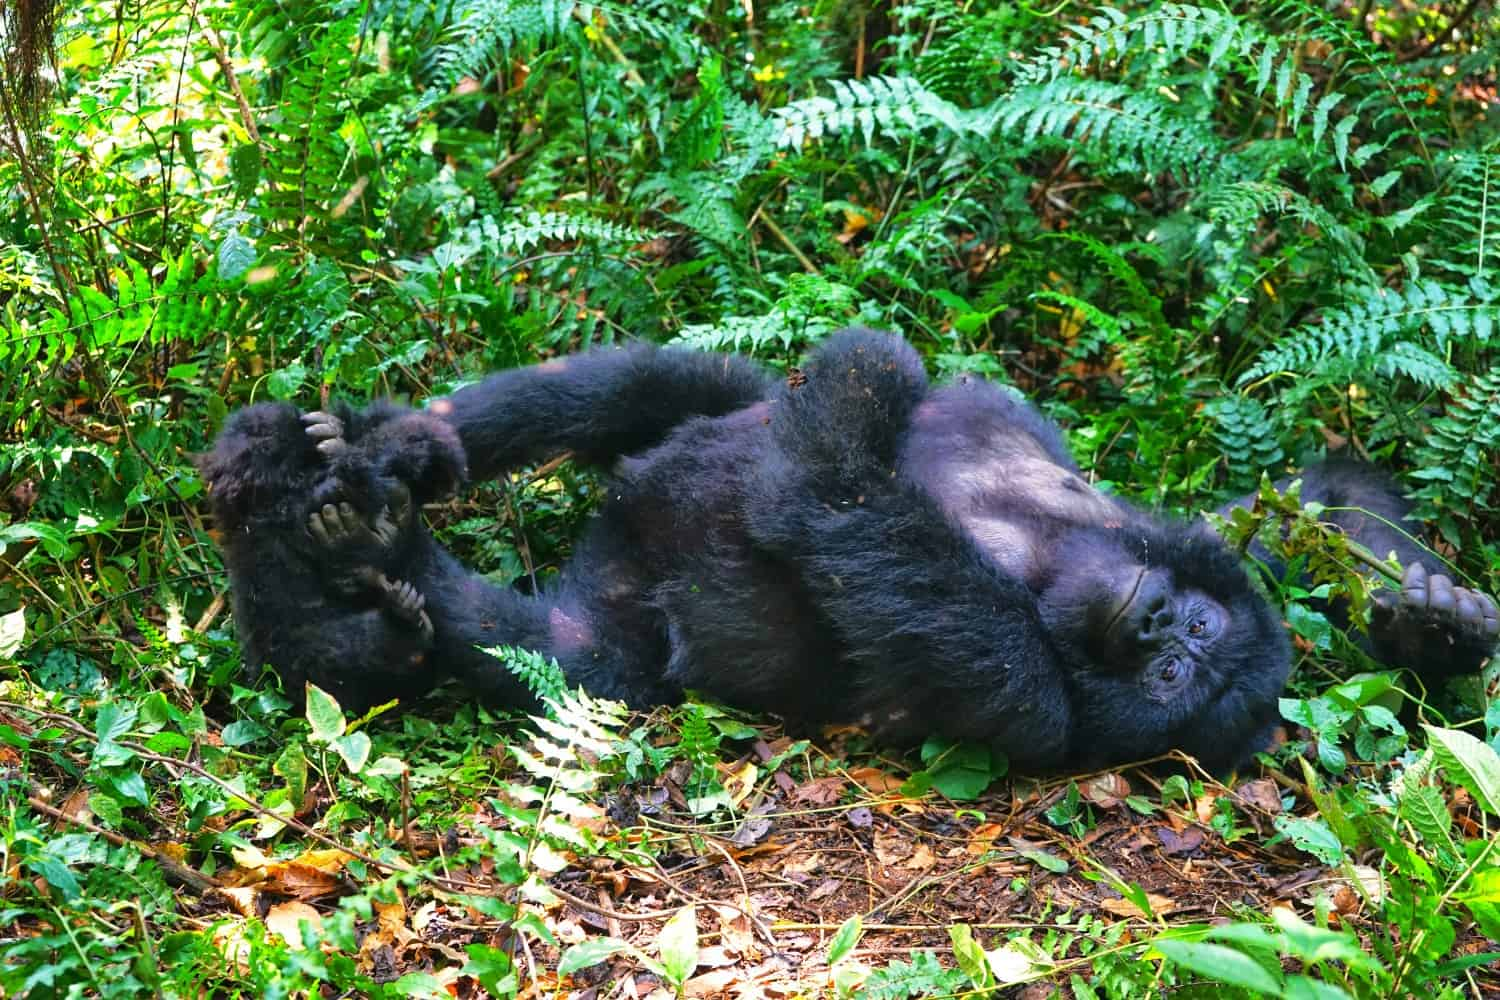 Wild mountain gorillas in Virunga National Park